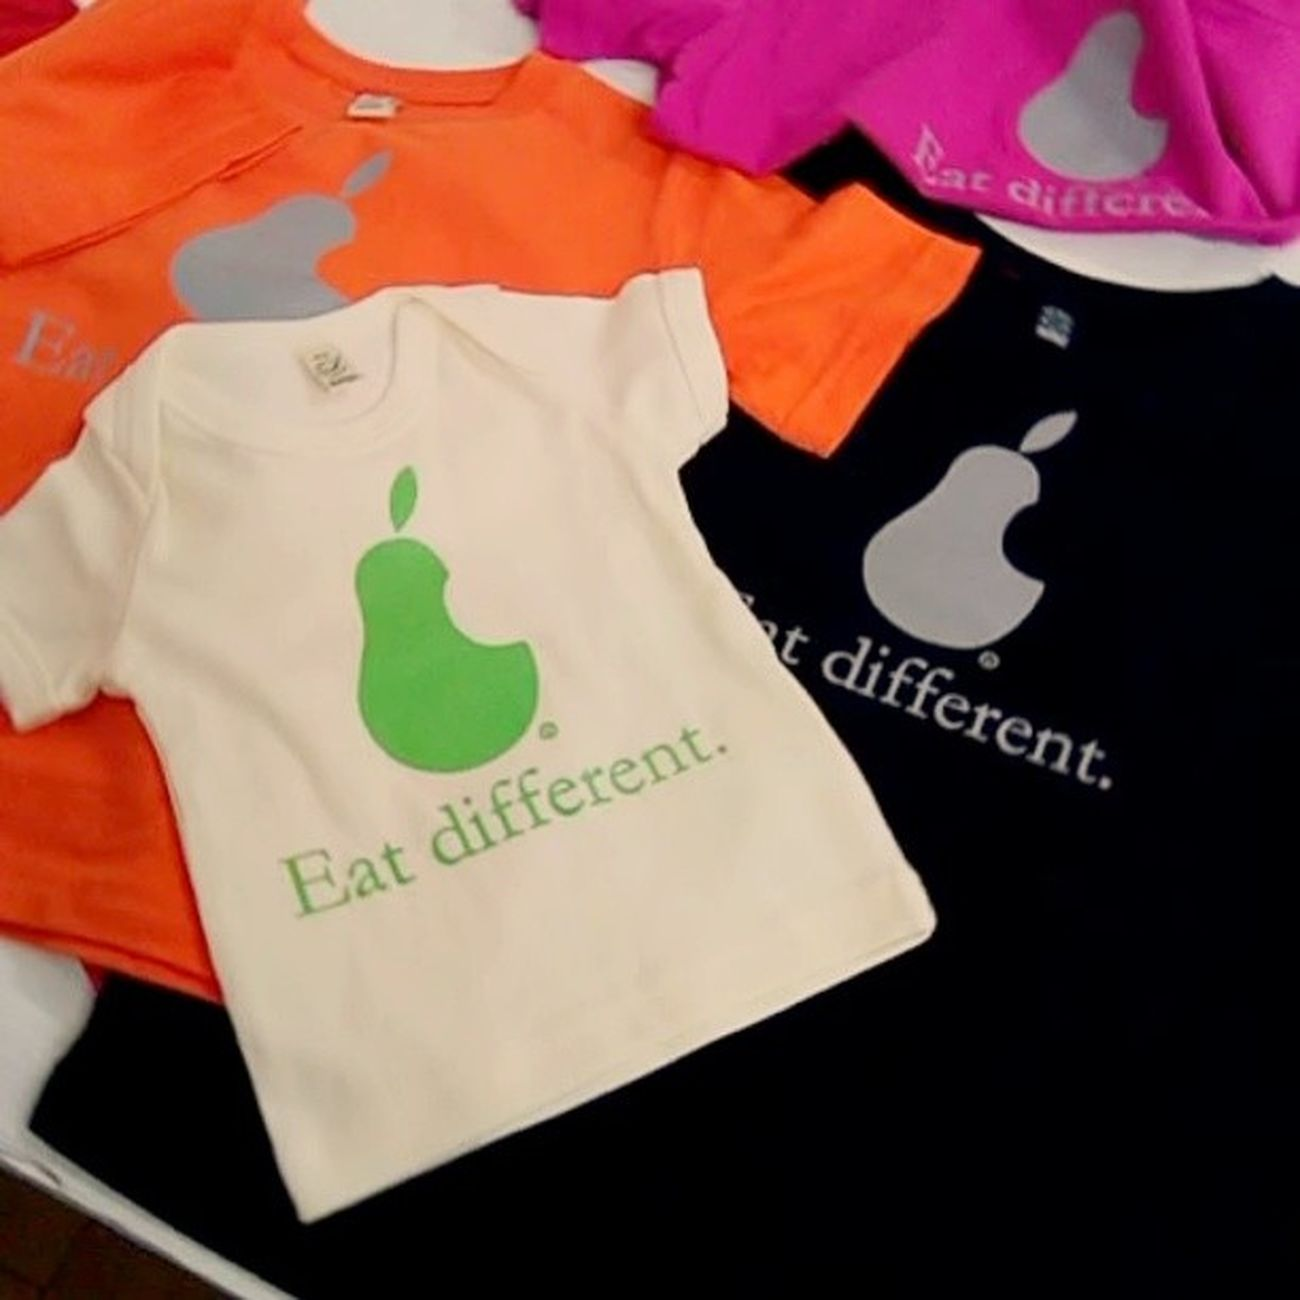 Kids and babies t-shirts #vegantshirts #vegan #eatdifferent #apple #pear #organic #vegfestuk Apple London Fairtrade Vegan Organic Pear Chiaralascura Vegantshirts Fairwear Veganfashion Eatdifferent Vegfestuk Caterpillarrai